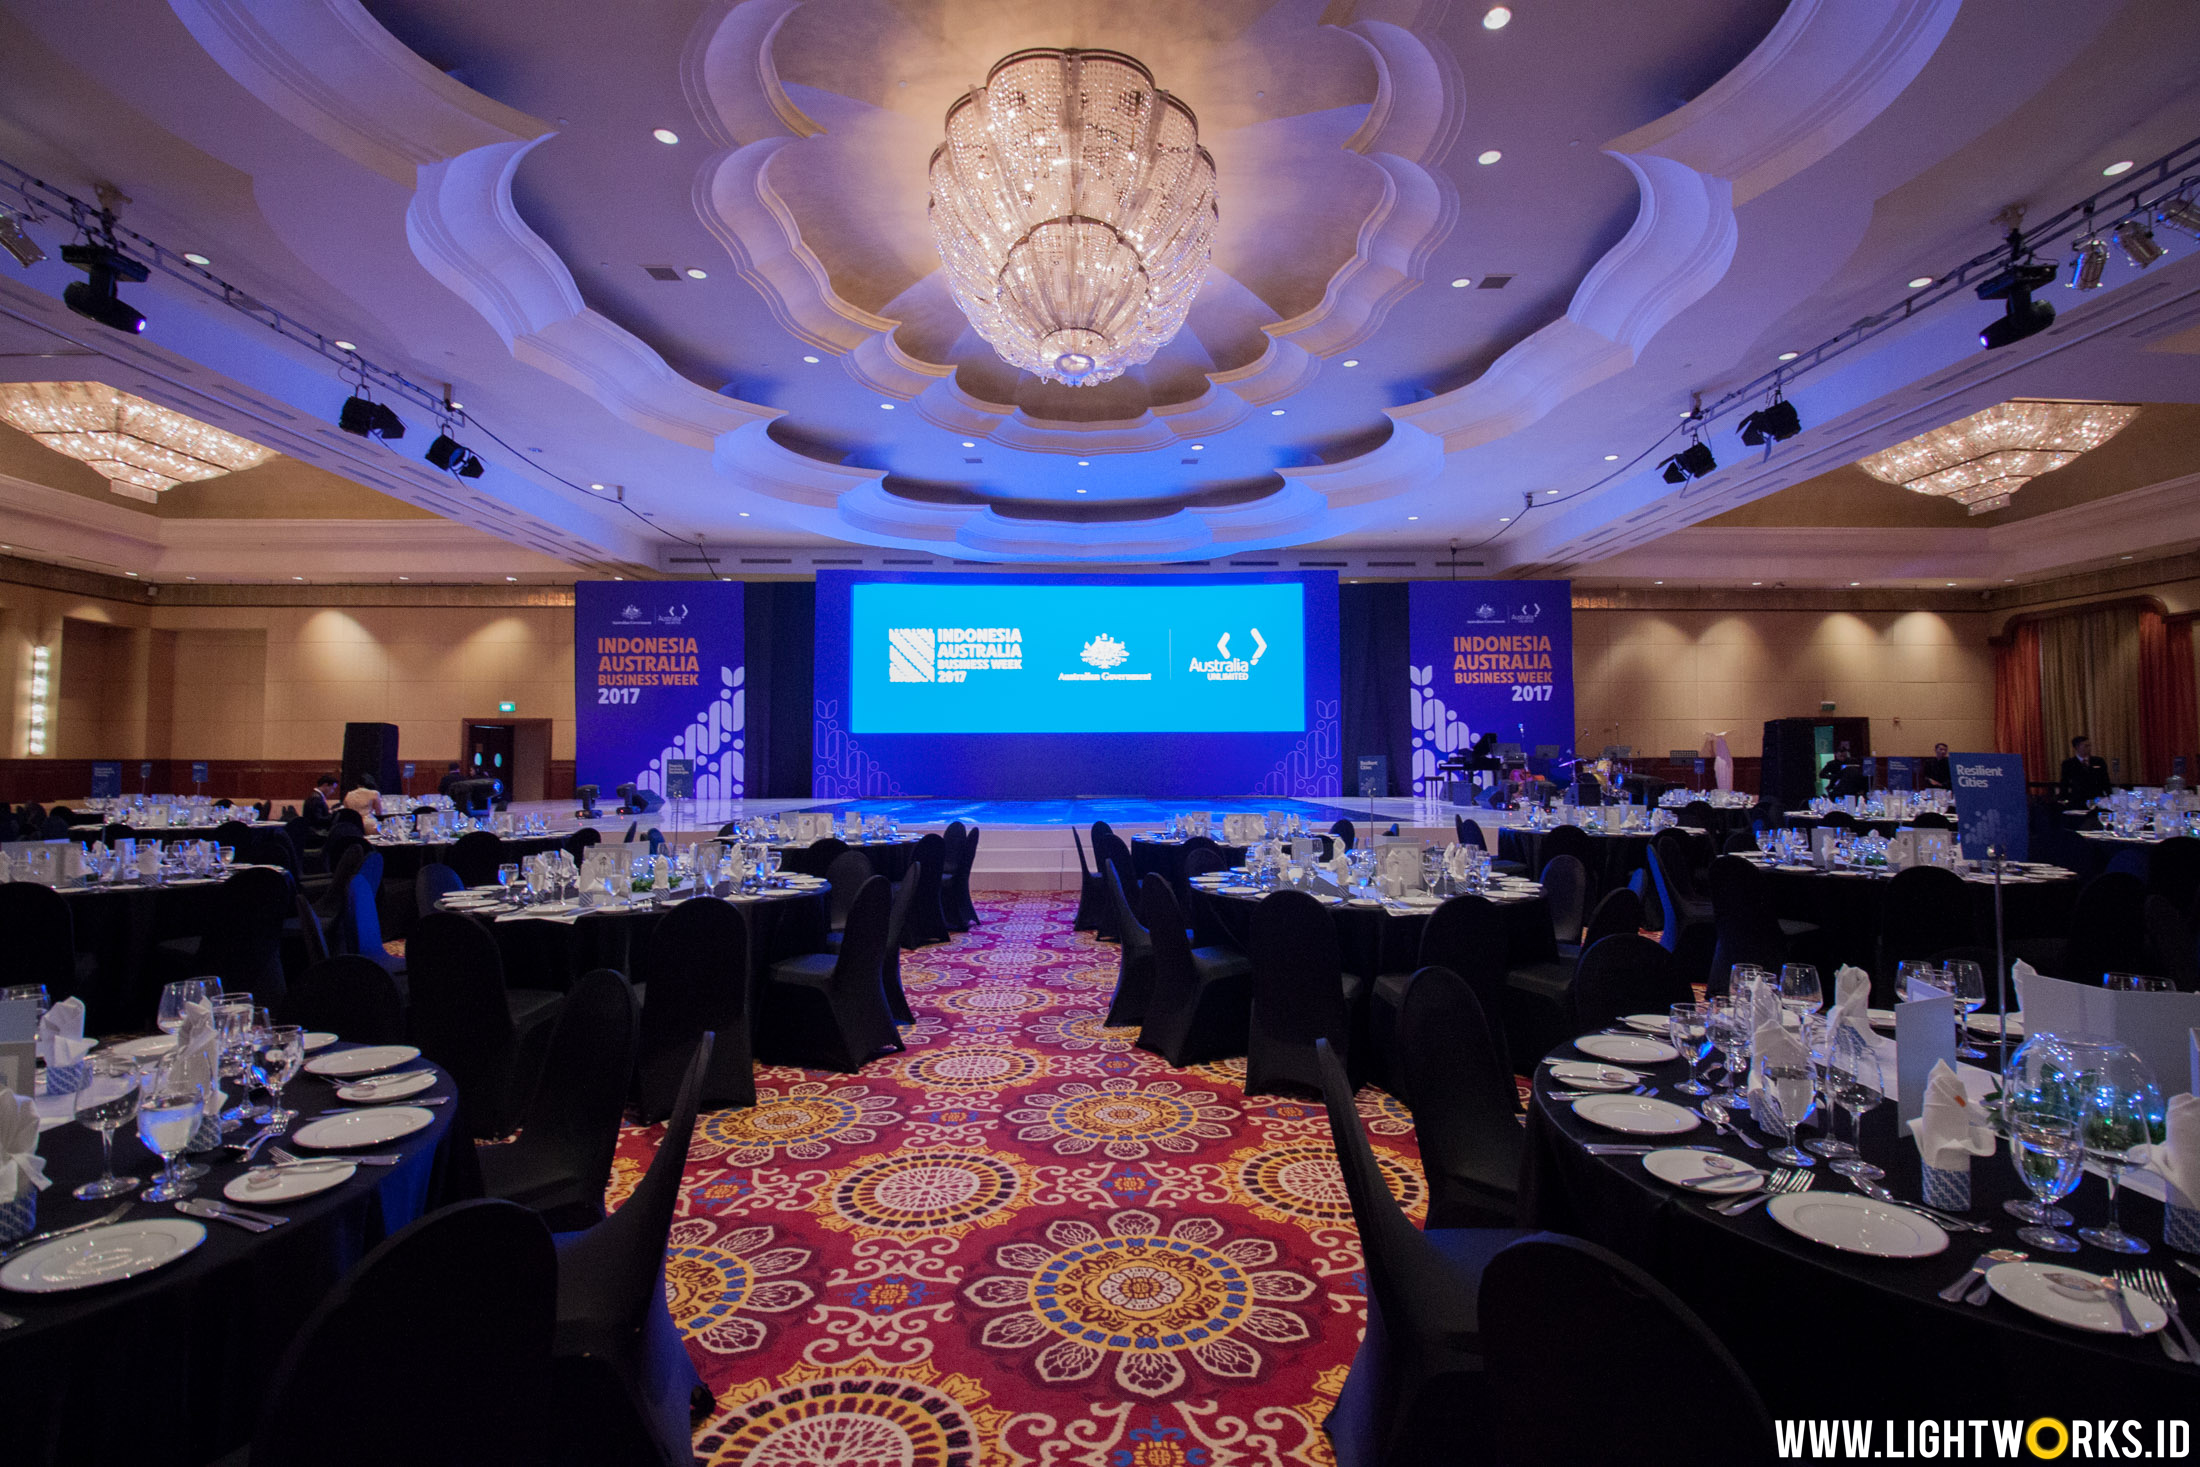 Indonesia Australia Business Week 2017 | Venue at The Ritz-Carlton Mega Kuningan | Sound system by Soundworks Jakarta | Lighting by Lightworks